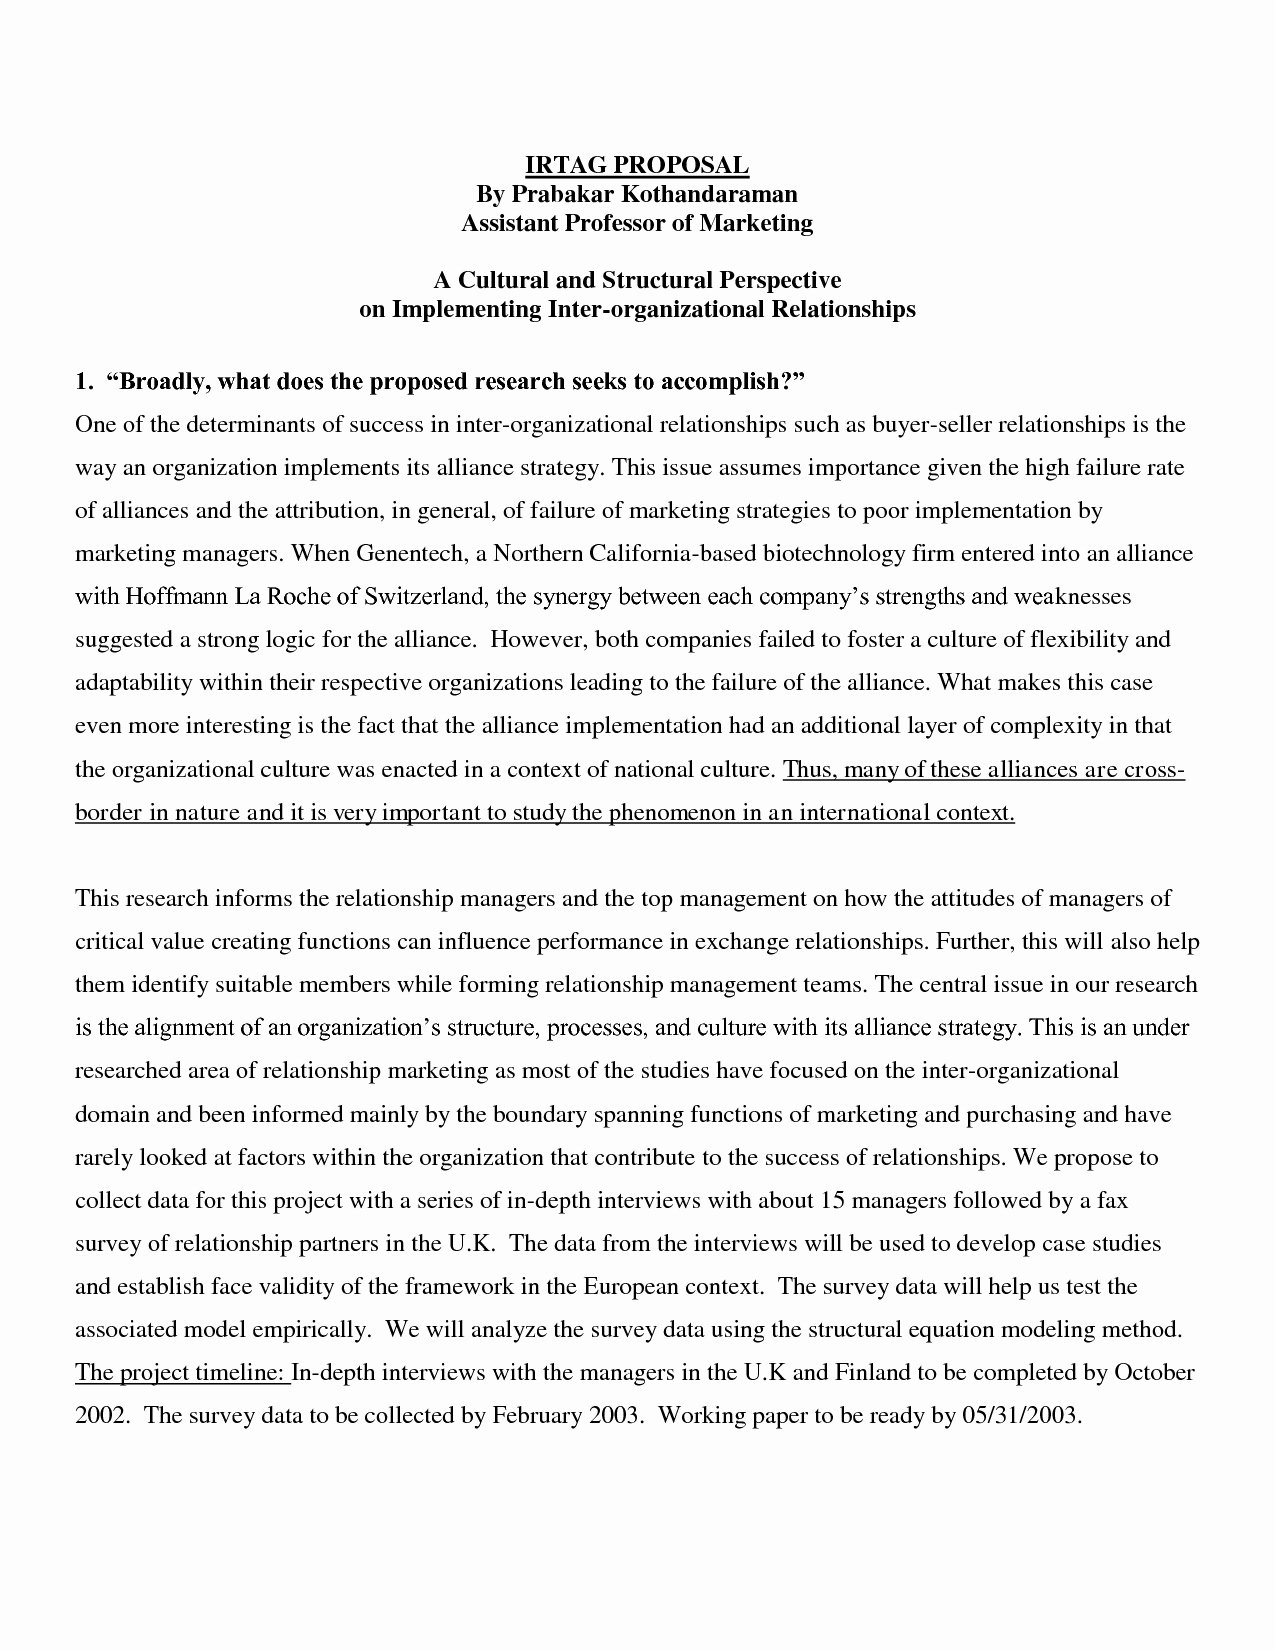 Research Paper Proposal Template Awesome Example Abstract for Research Paper Bamboodownunder